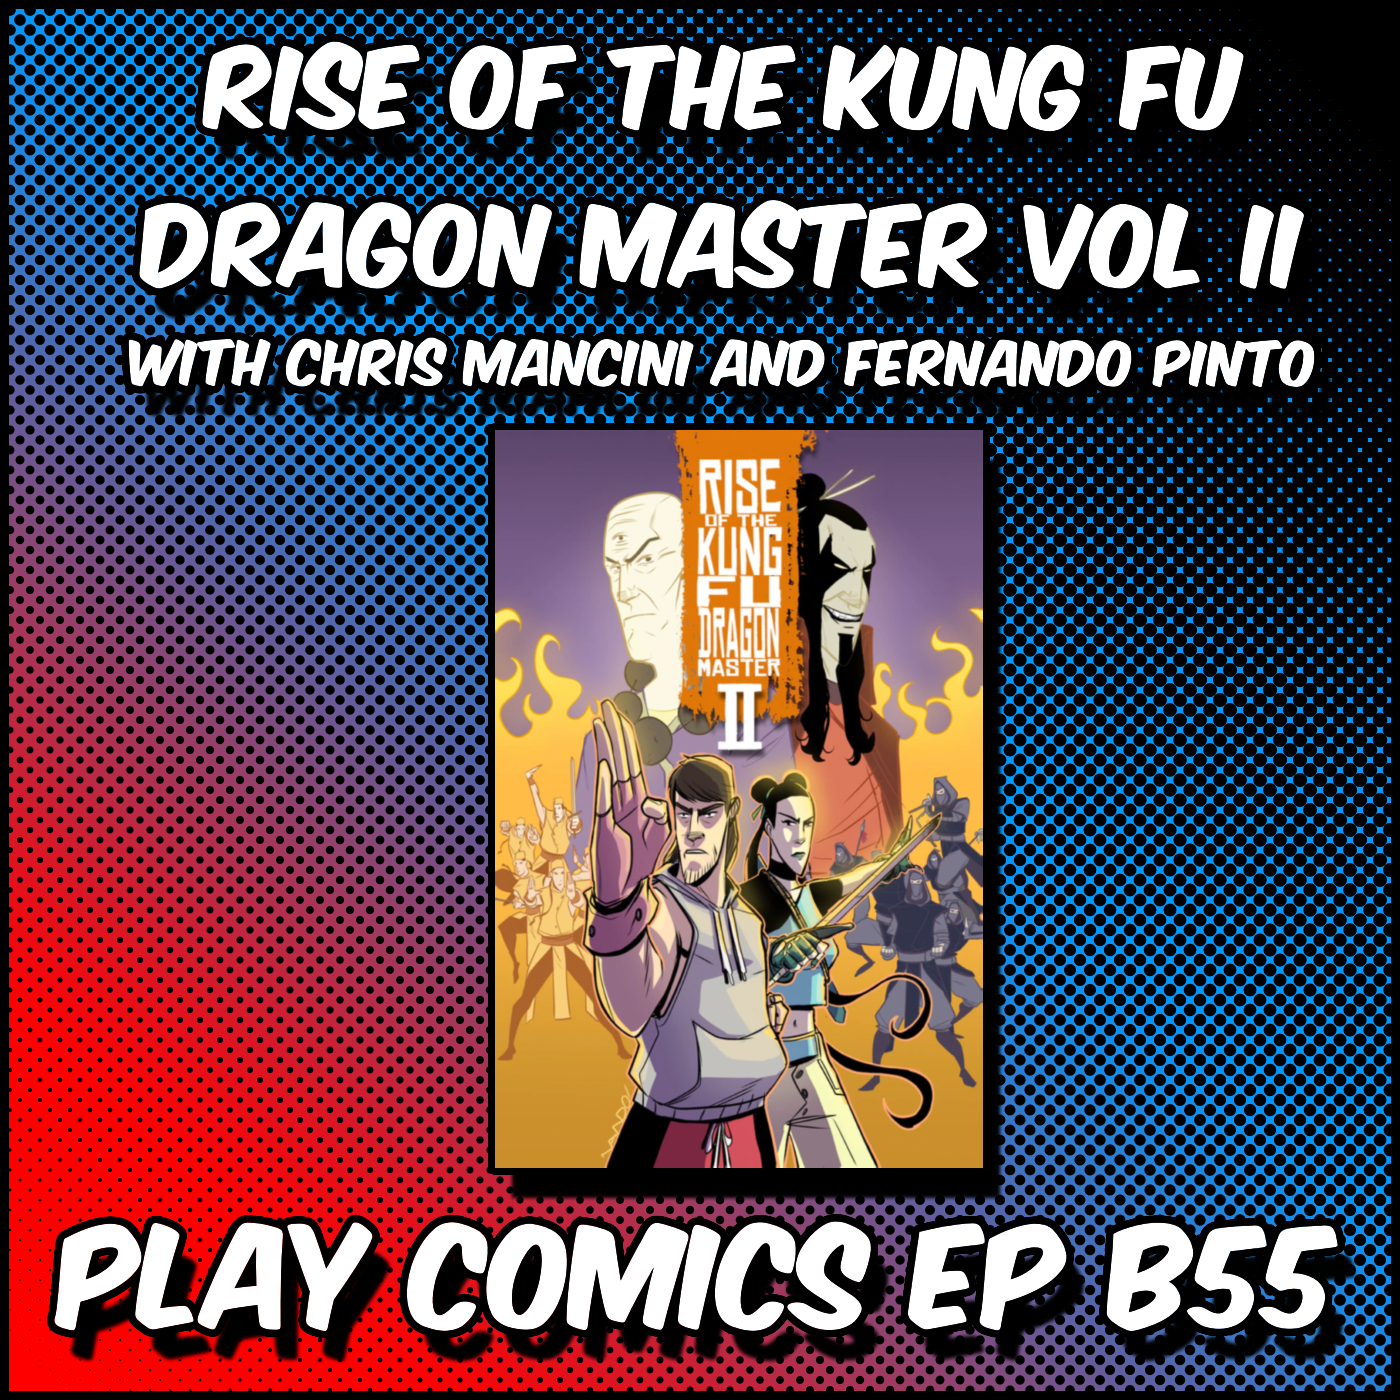 Rise of the Kung Fu Dragon Master Vol 2 with Chris Mancini and Fernando Pinto